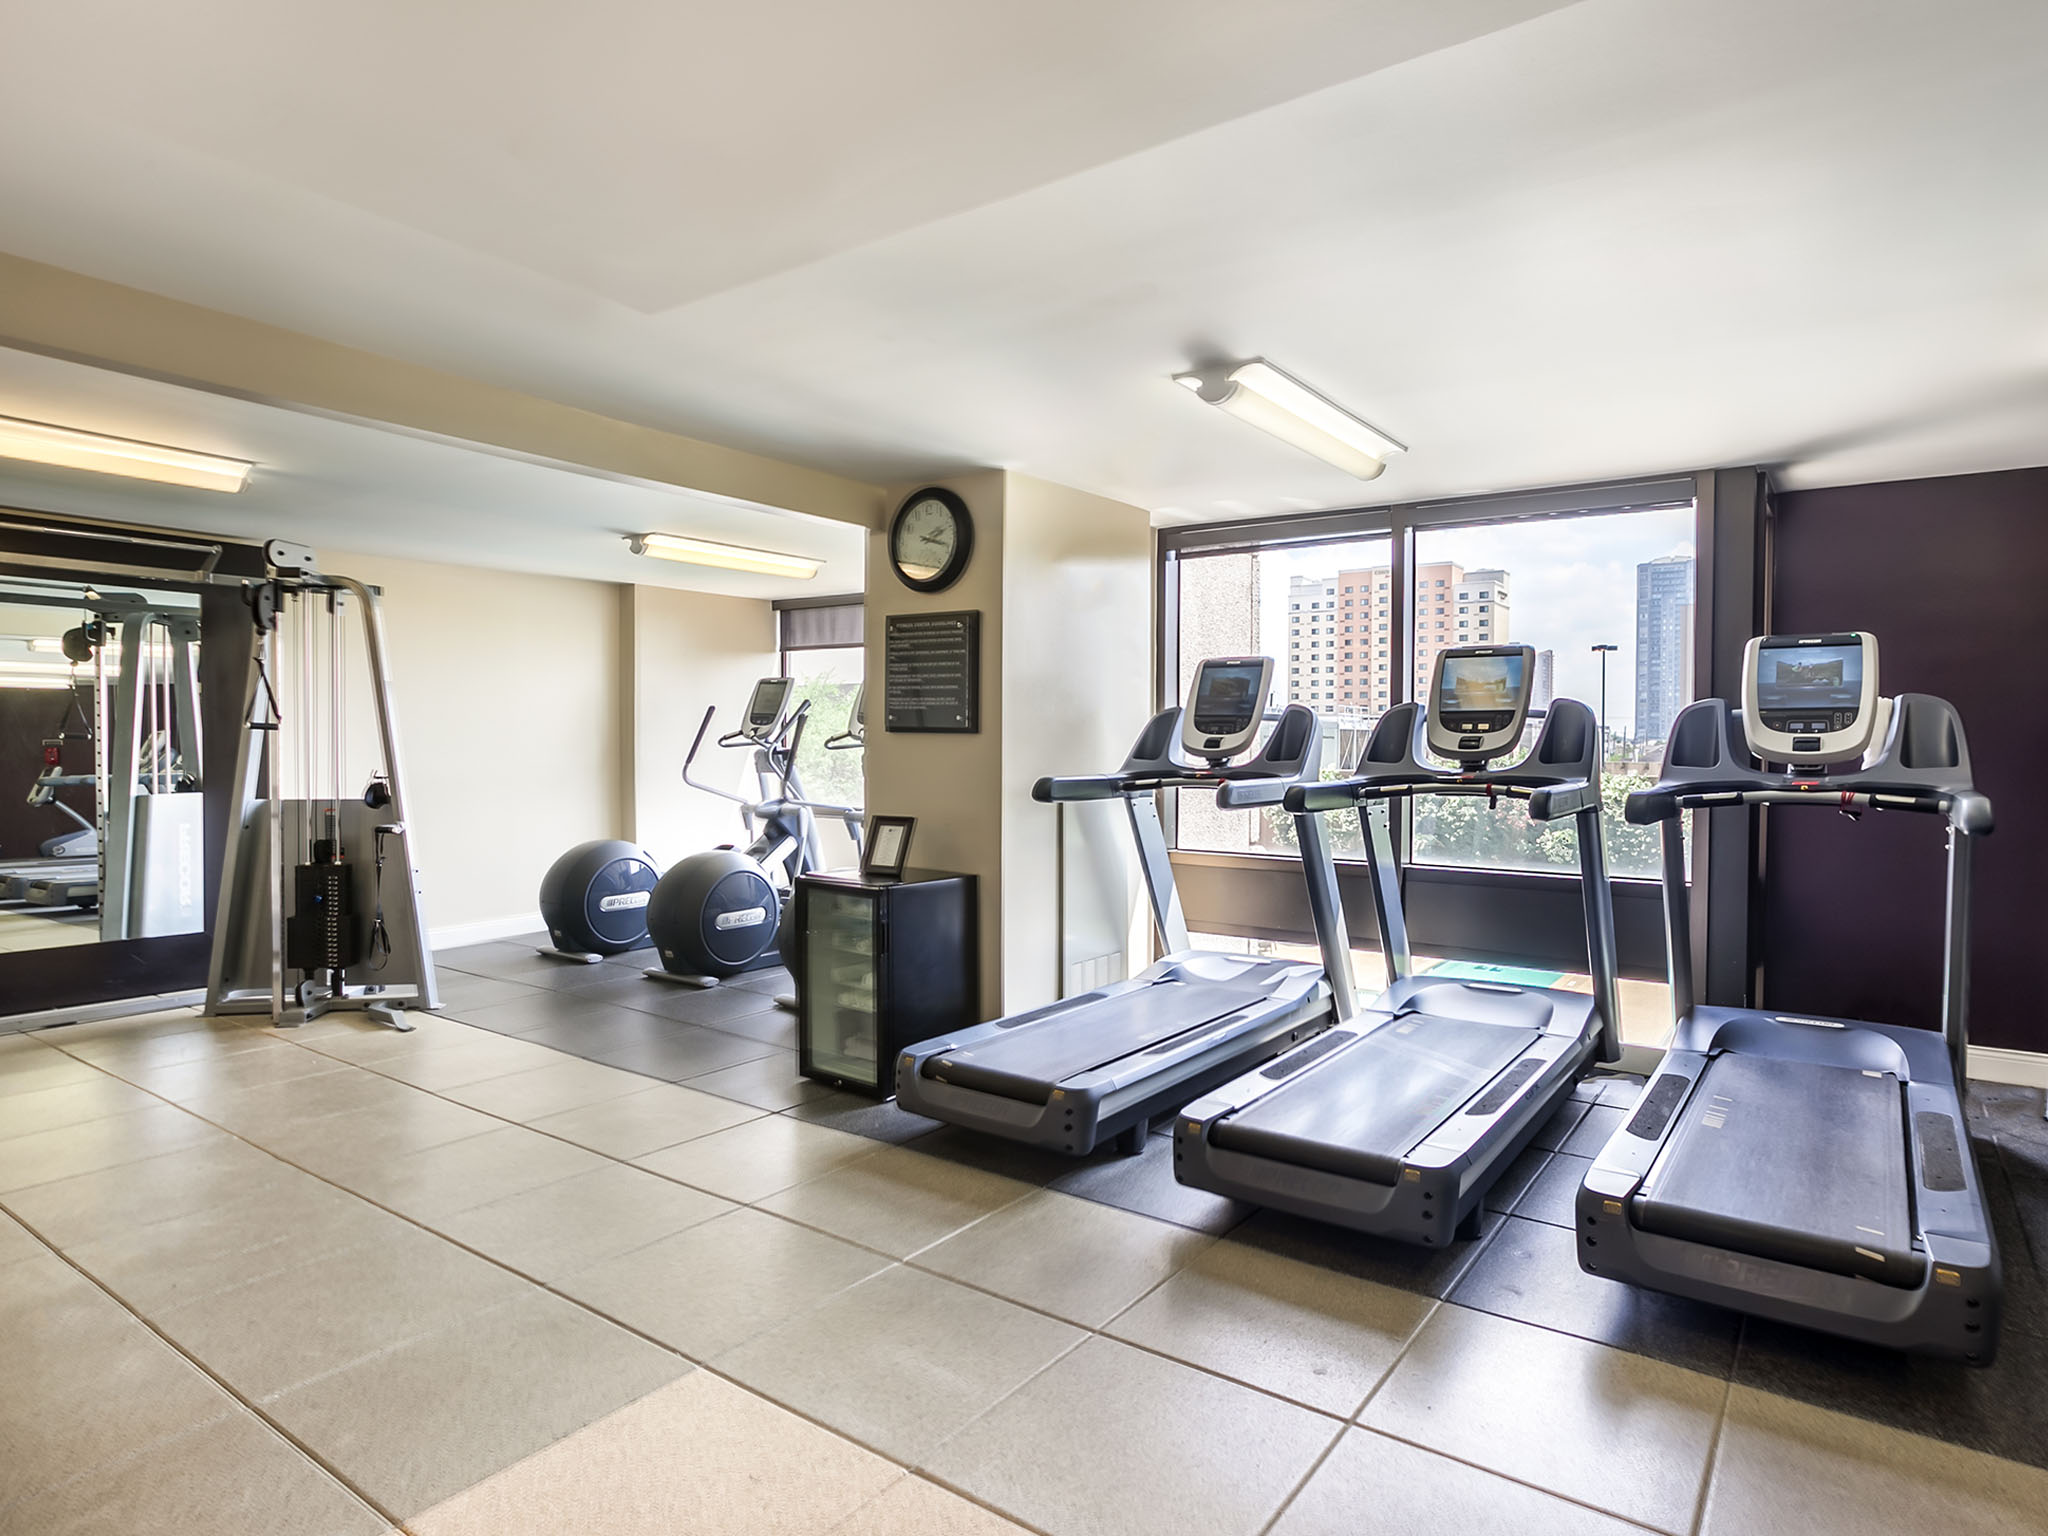 https://www.hotelsbyday.com/_data/default-hotel_image/4/20587/fitness-center.jpg